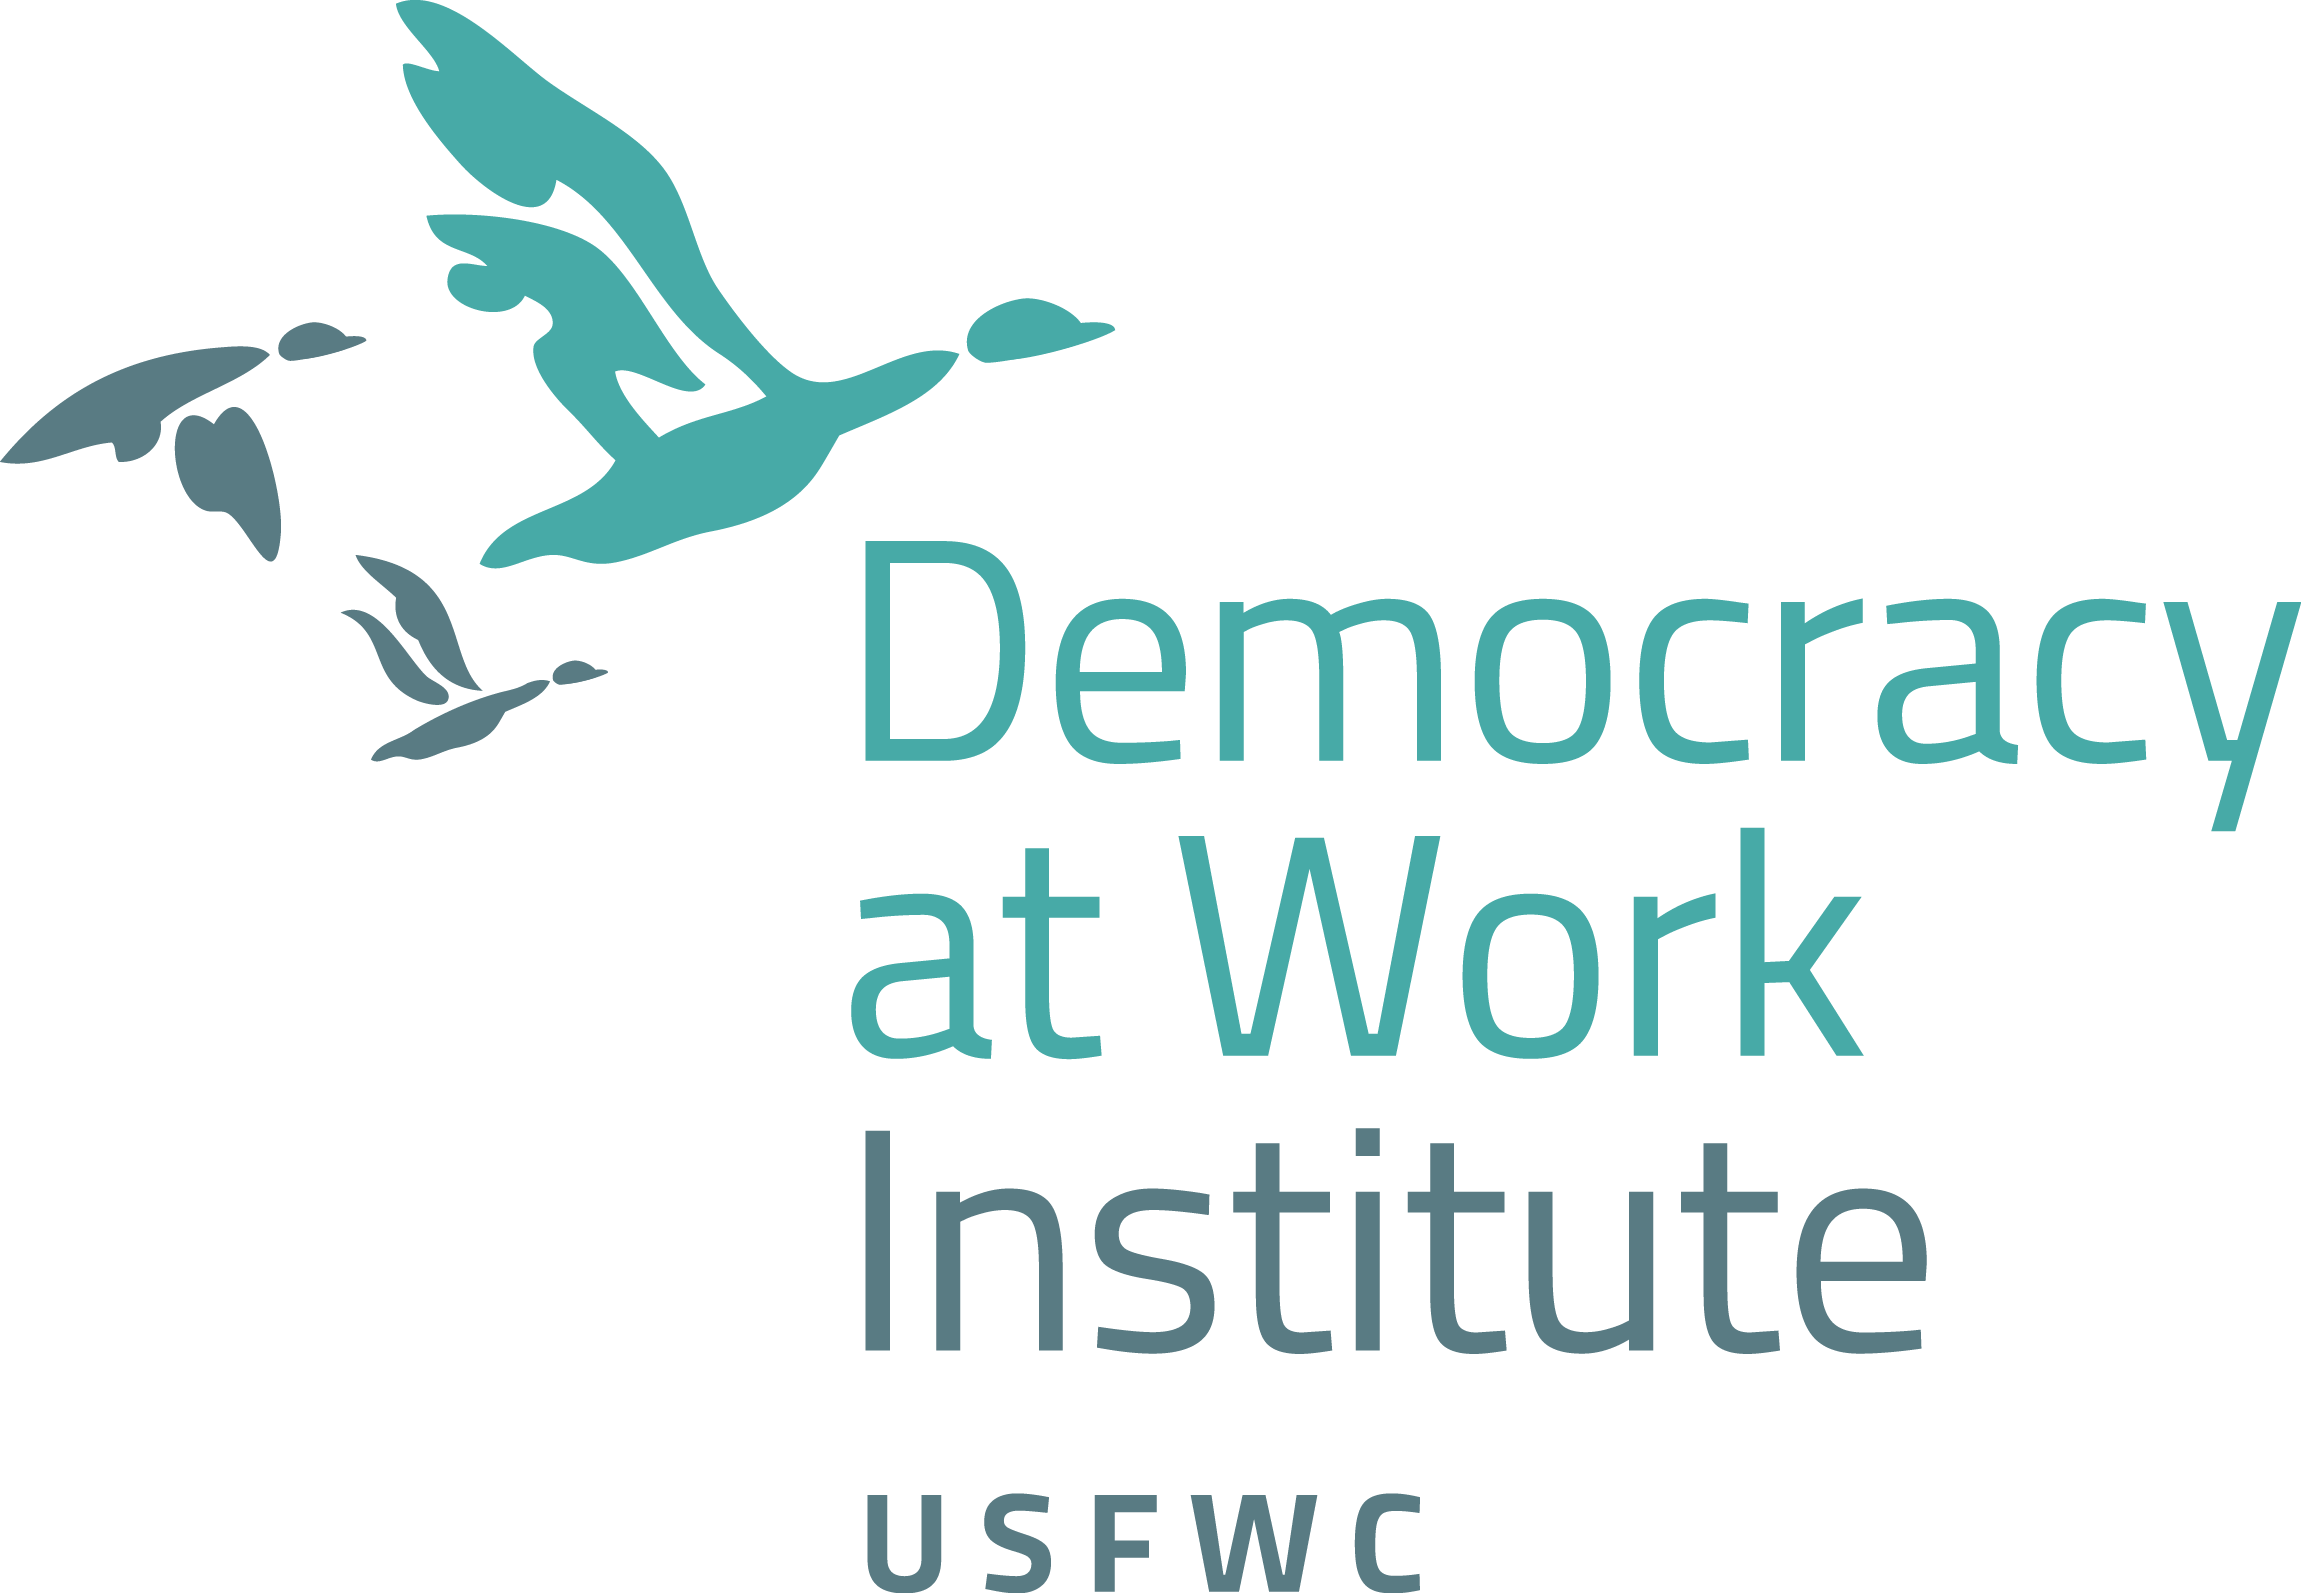 DAWI_democracy_at_work_institute_logo.png